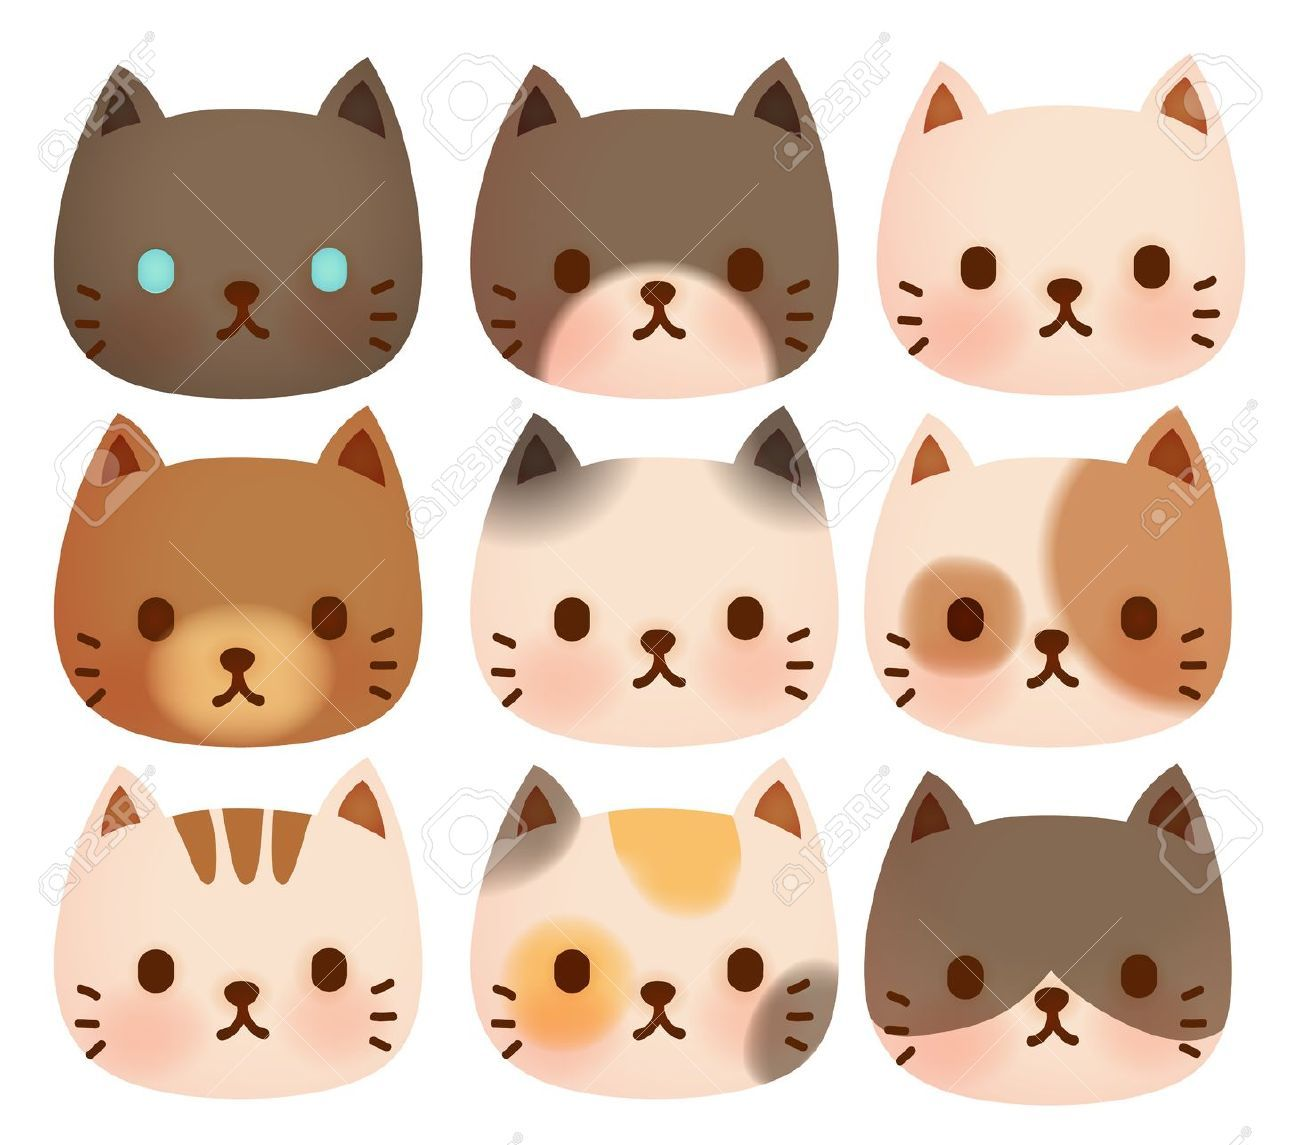 Cat Face Stock Vector Illustration And Royalty Free Cat Face